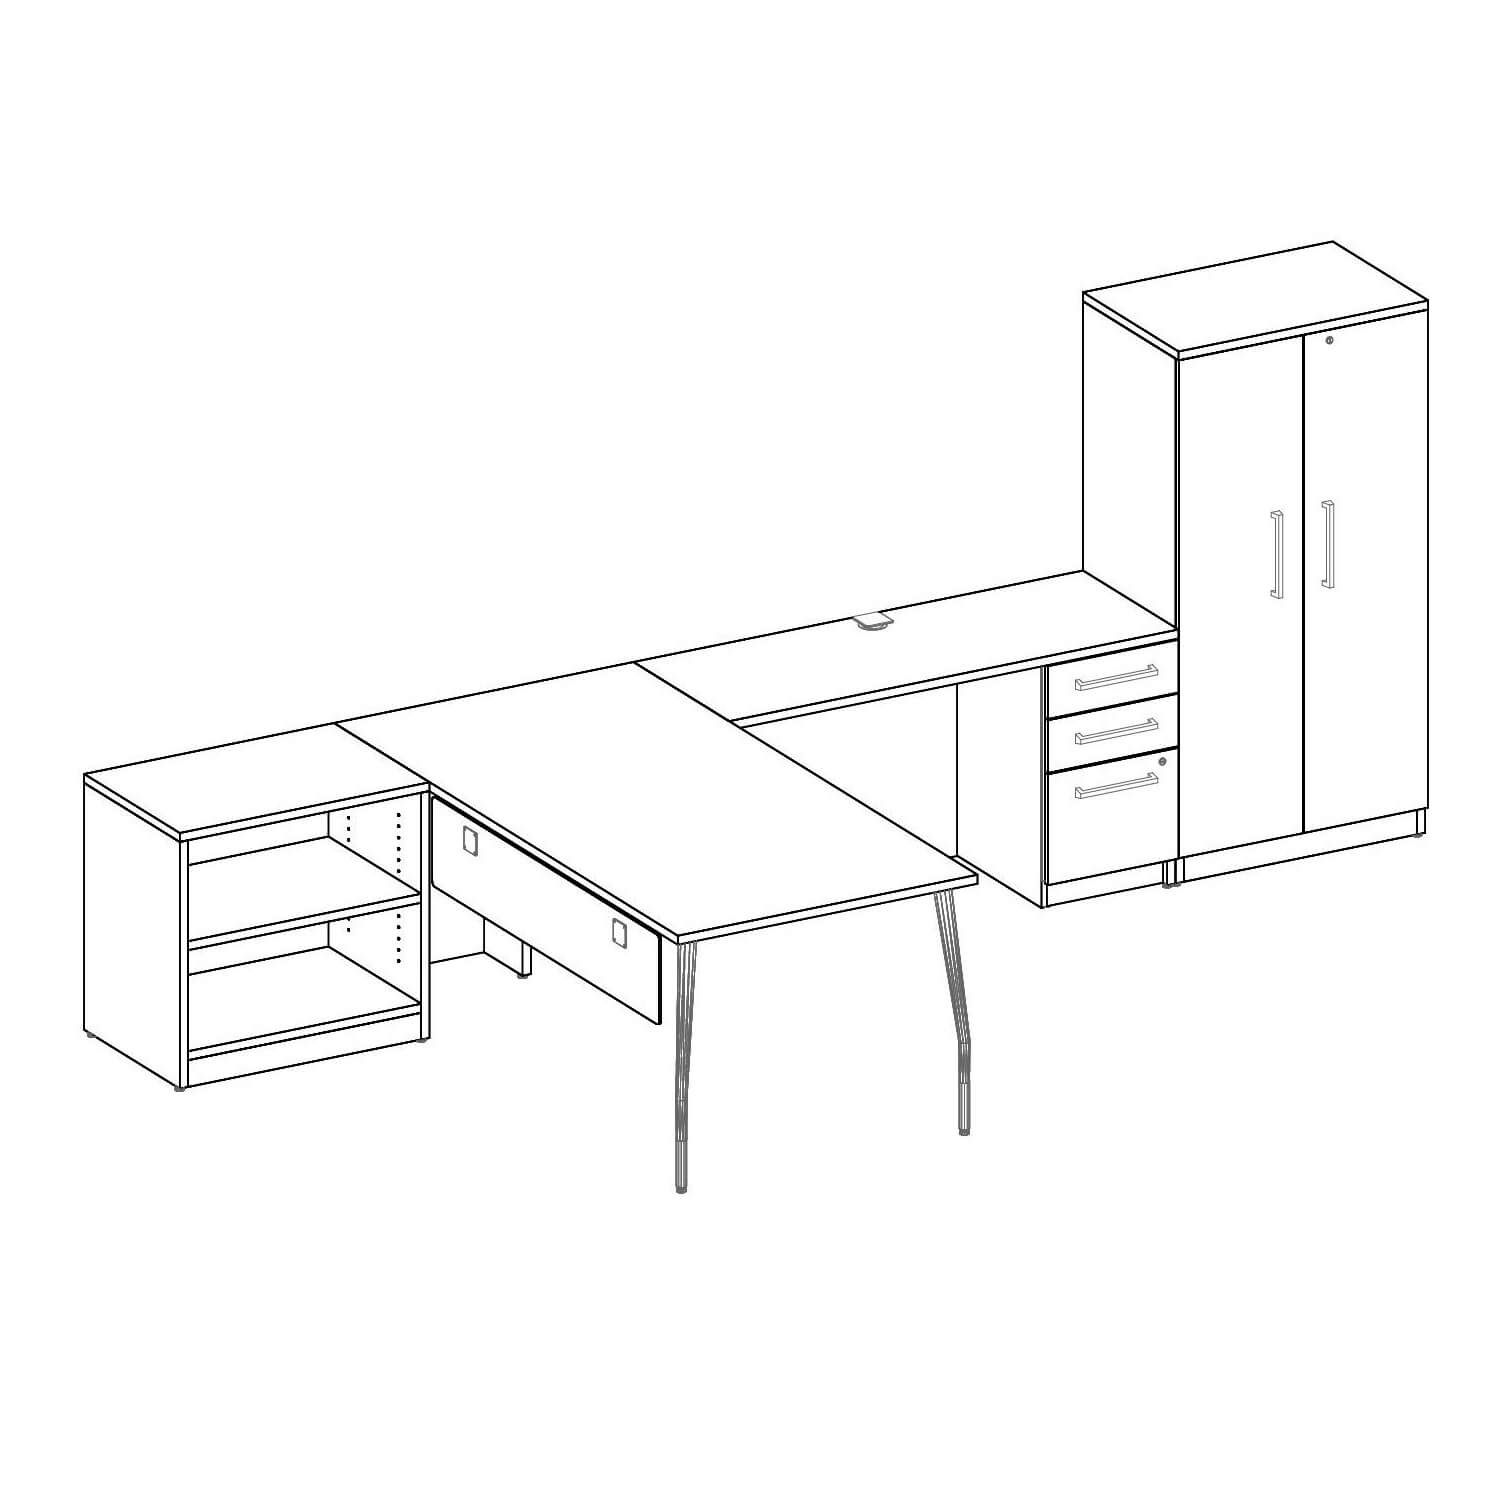 Unique office furniture layout 3d